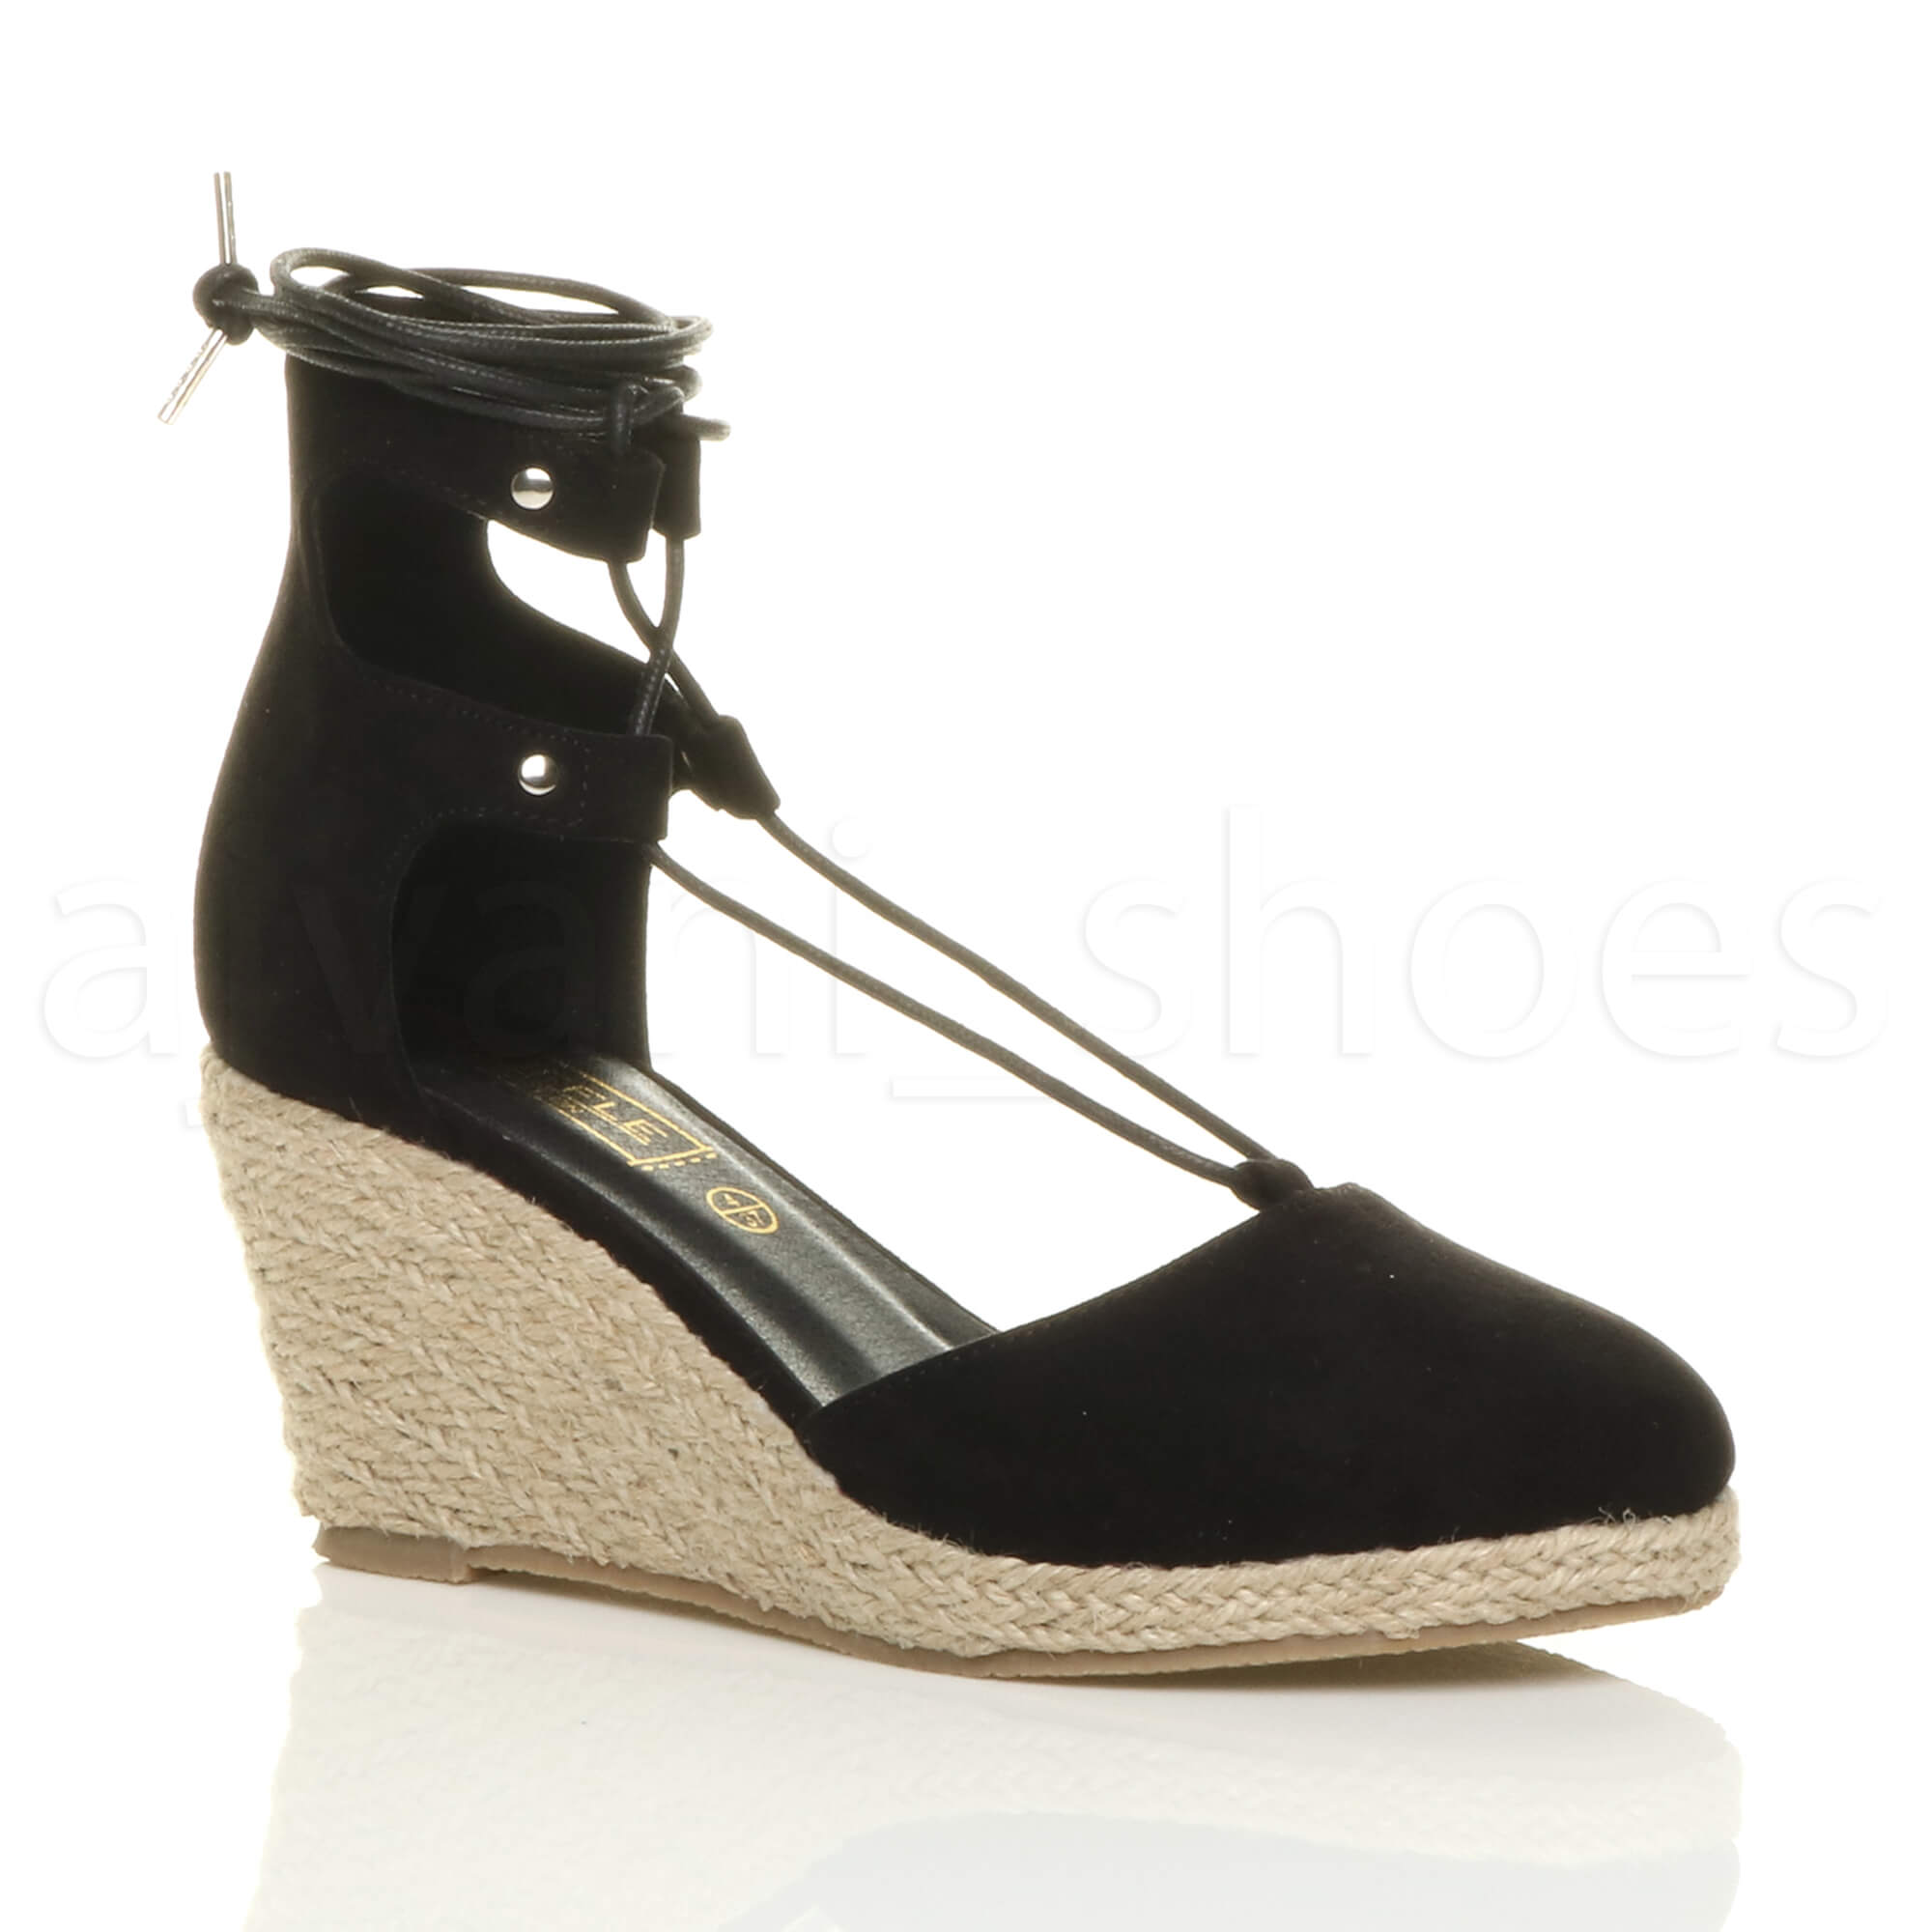 WOMENS-LADIES-MID-WEDGE-HEEL-SUMMER-GHILLIE-TIE-UP-ESPADRILLES-SANDALS-SIZE